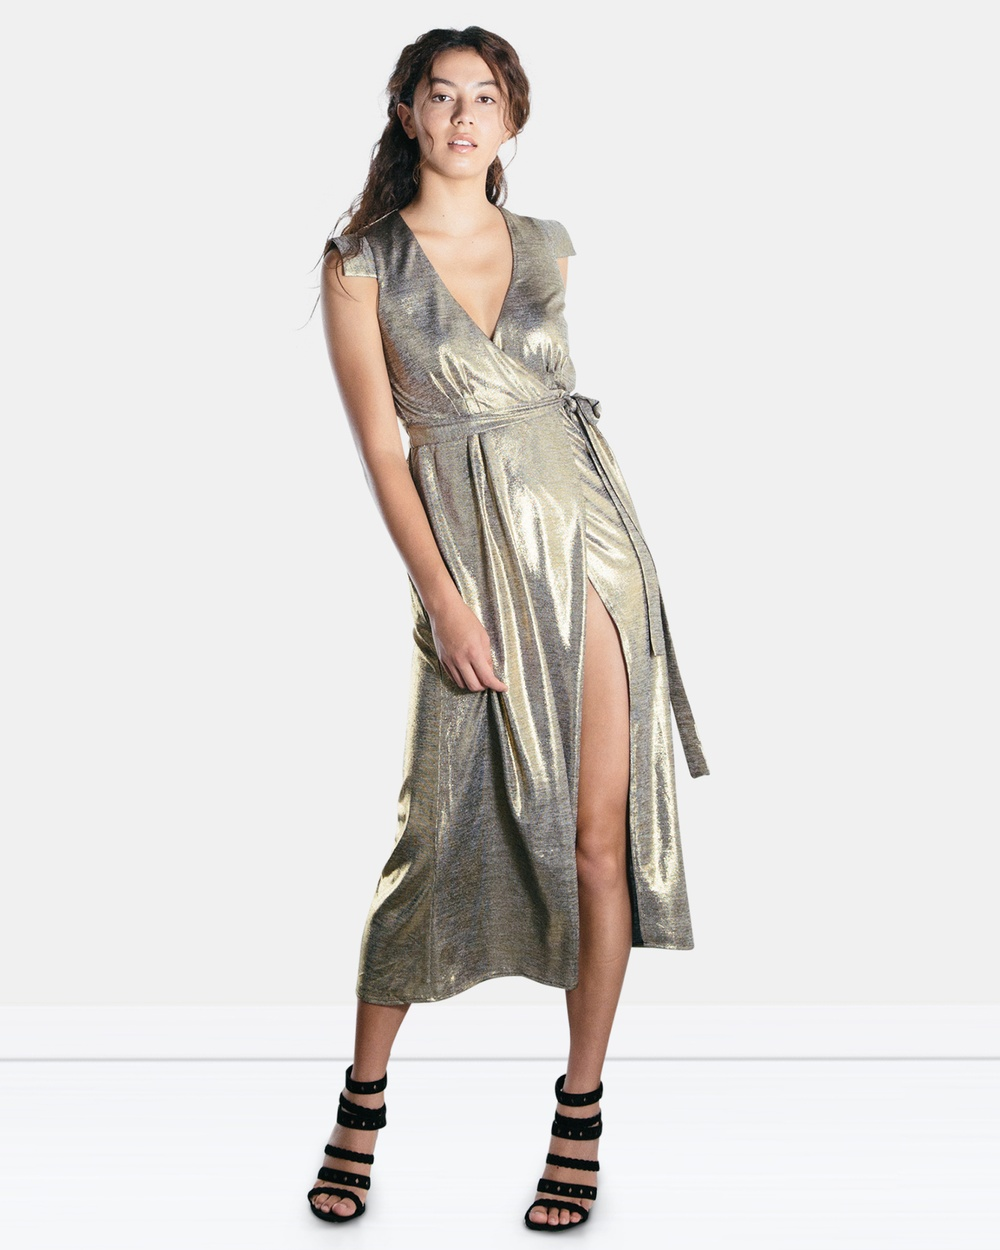 The Rushing Hour Gold Dust Til Dawn Wrap Dress